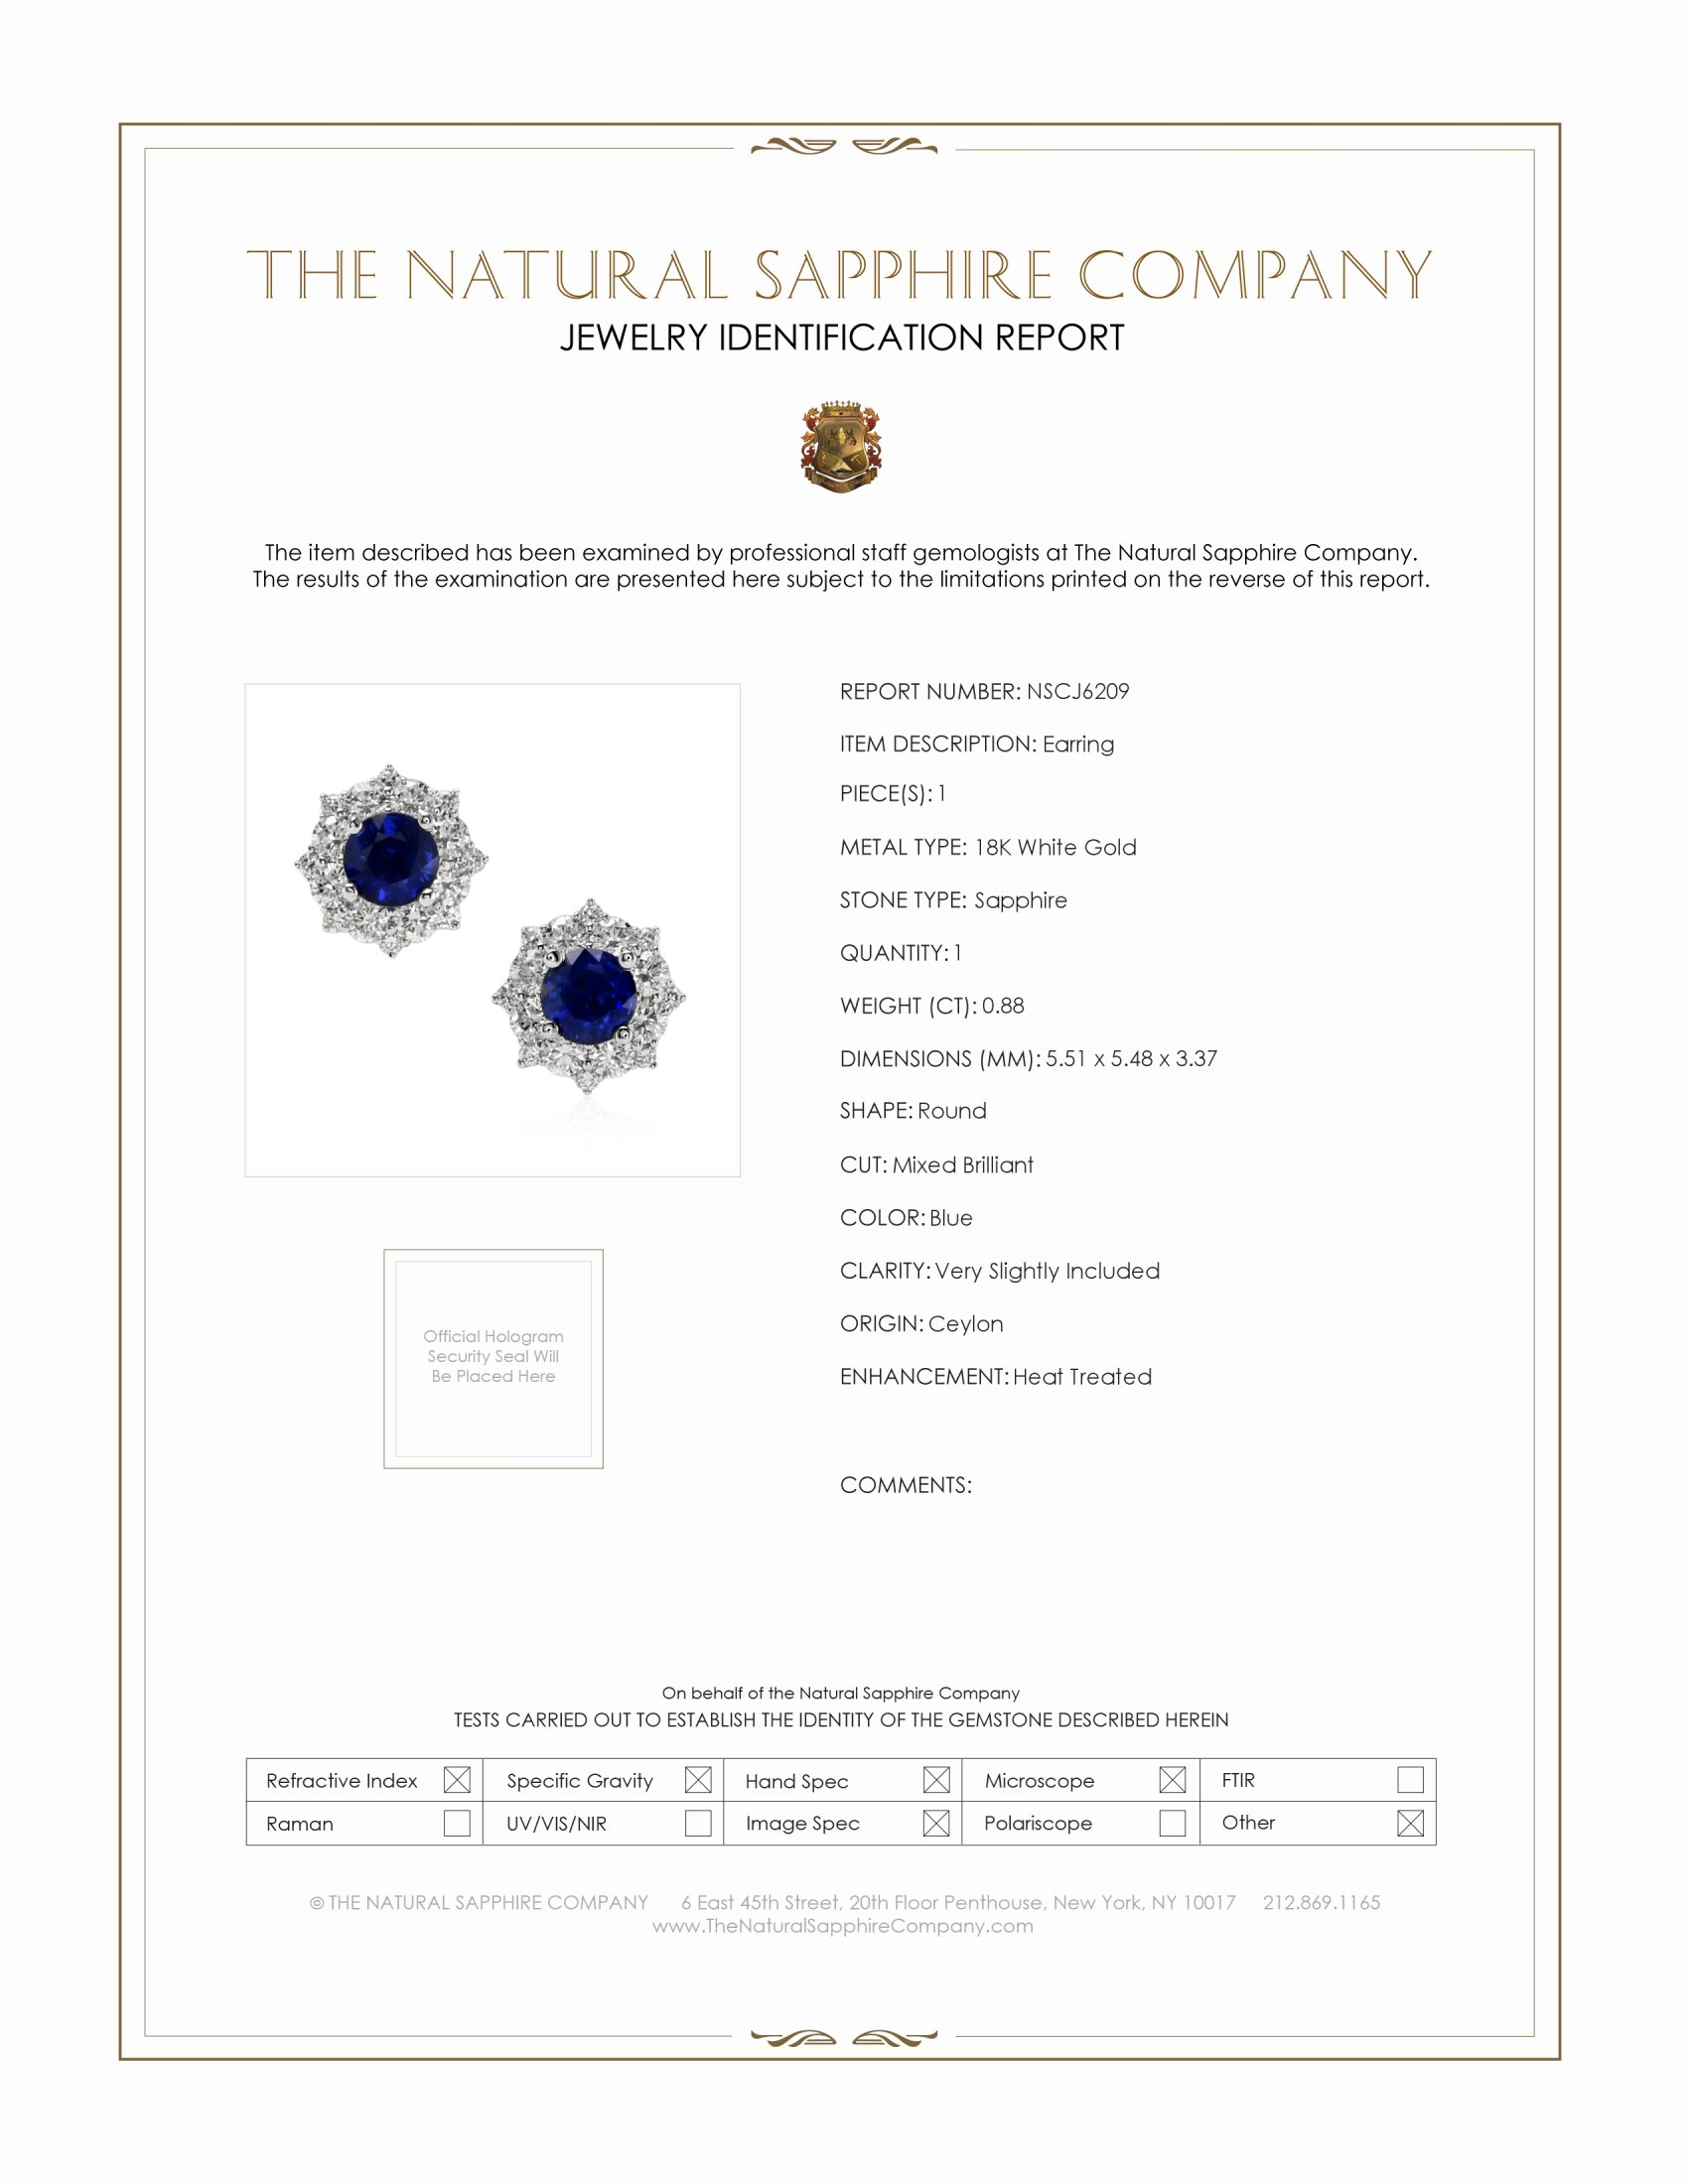 0.88ct Blue Sapphire Earring Certification